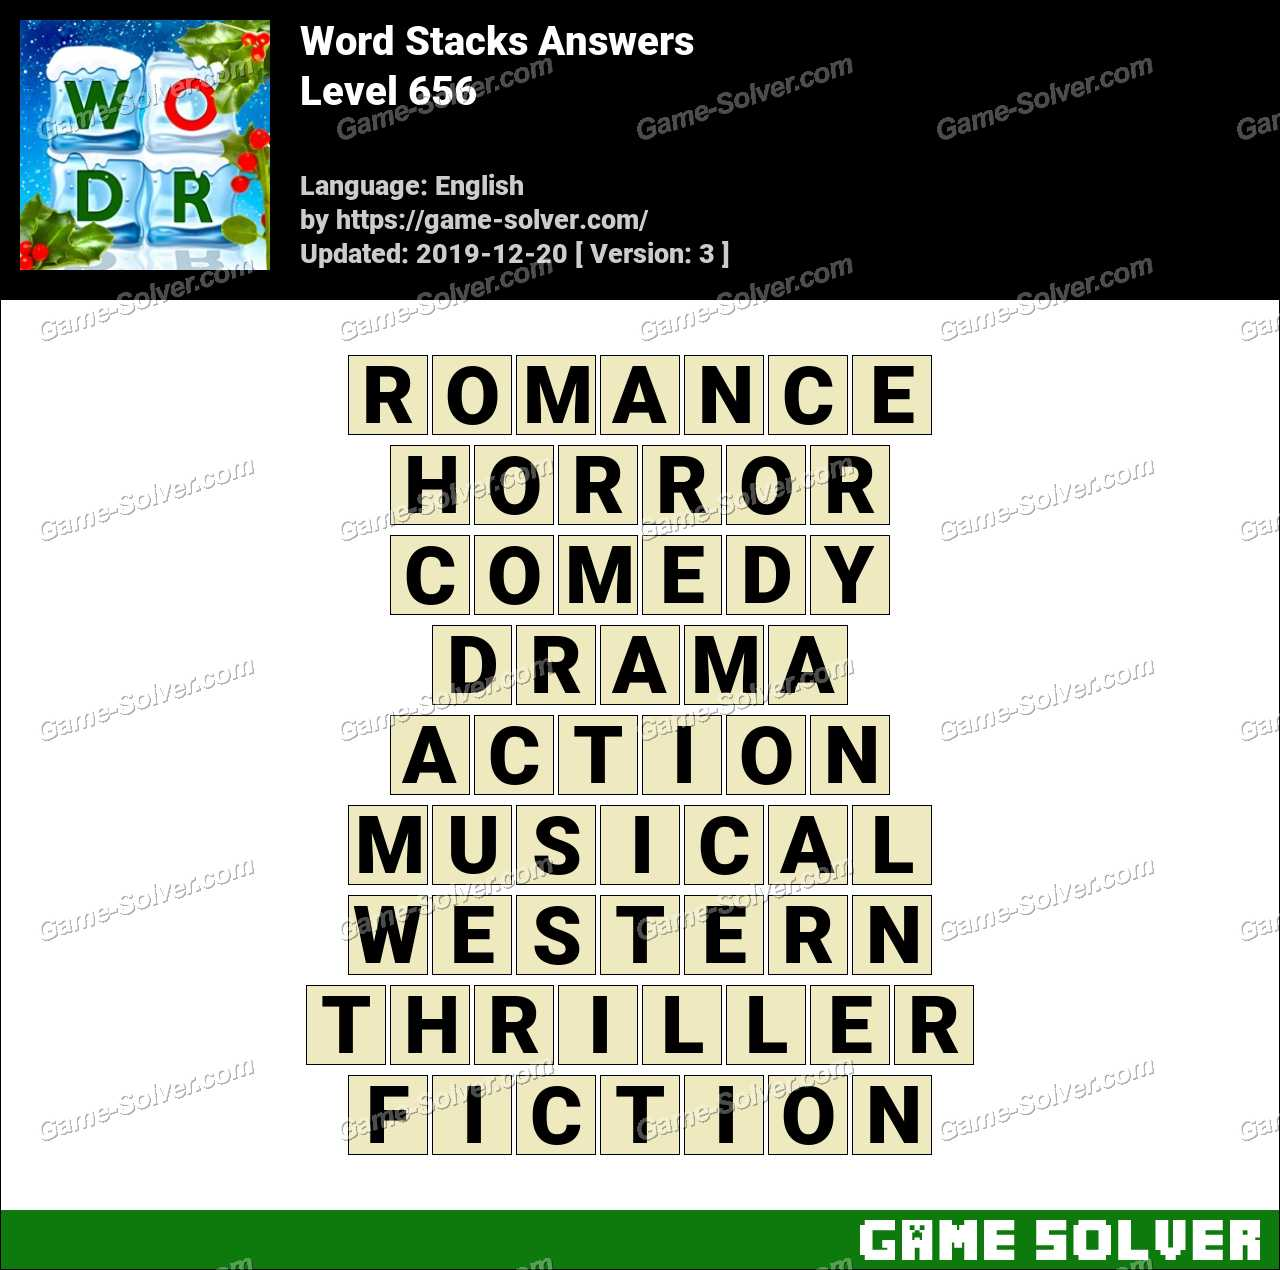 Word Stacks Level 656 Answers